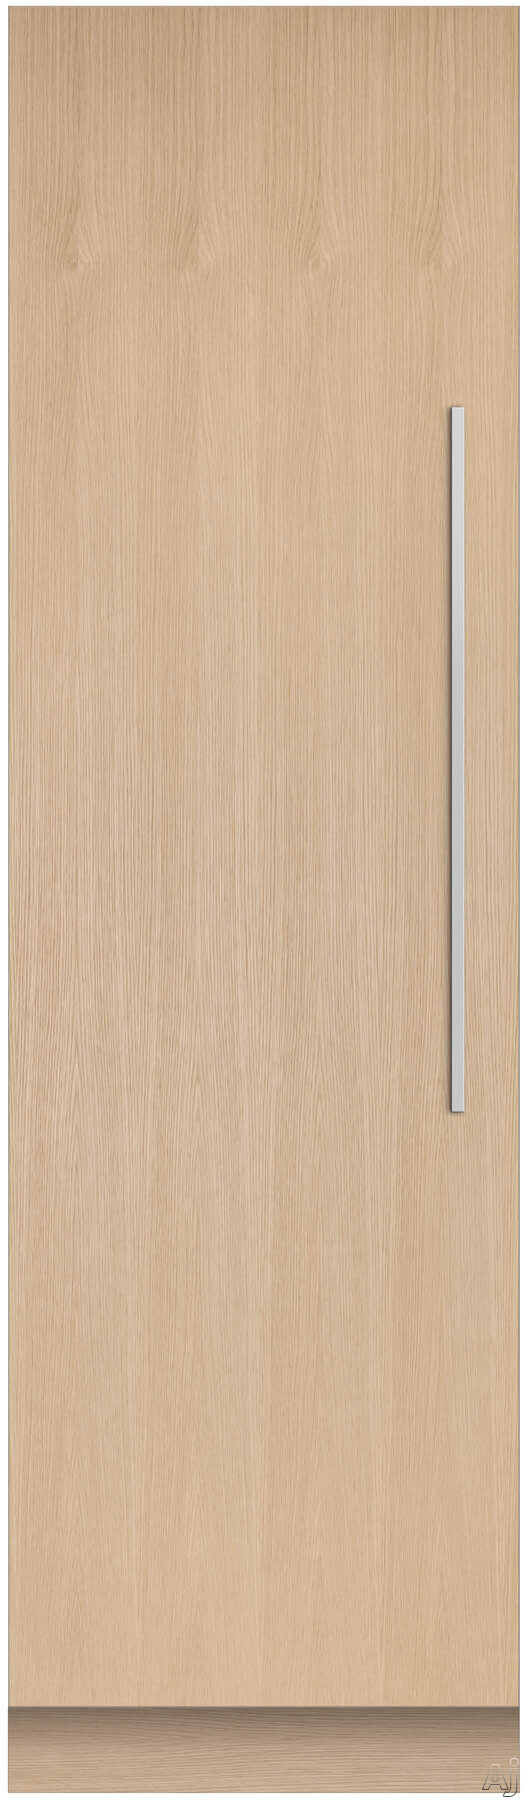 "Fisher & Paykel RS2484FLJ1 24 Inch Panel Ready Column Freezer with ActiveSmartâ""¢ Foodcare, Variable Temperature Zones, LED Lighting, Stainless Steel Interior, Joiner Kit Included and 15.6 cu. ft."